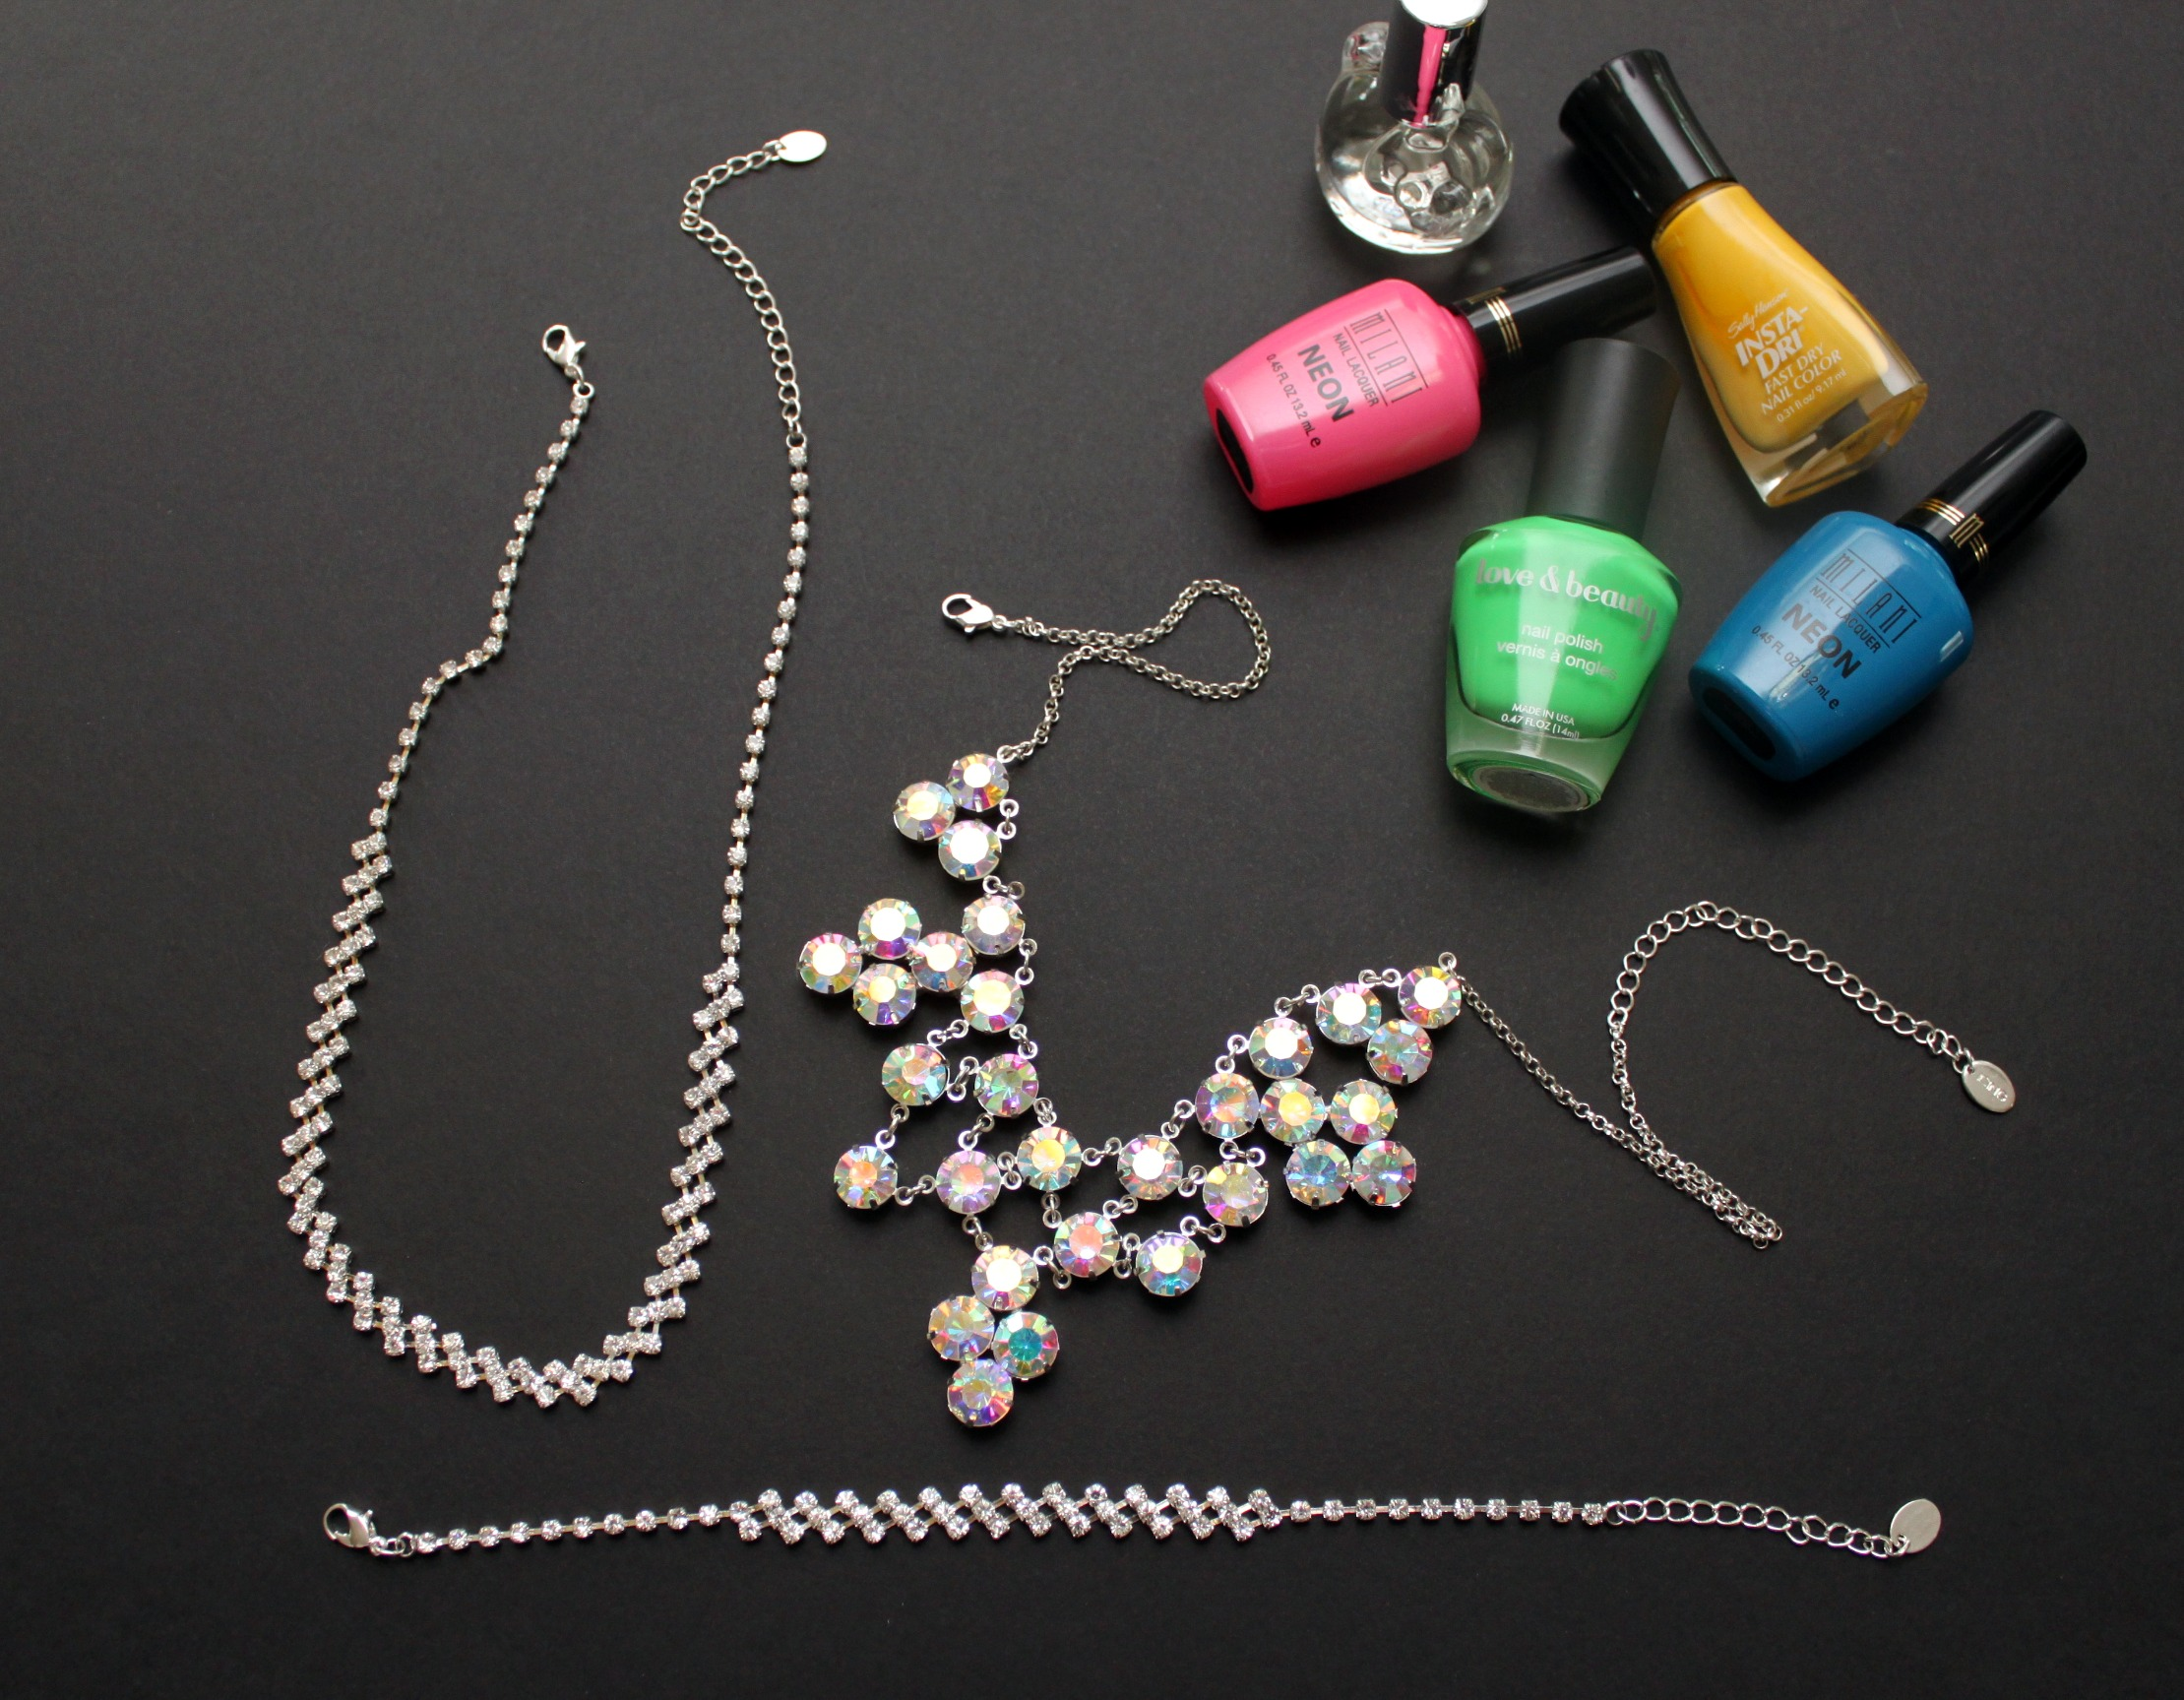 ideas necklace diy stylish for trendy necklaces ksvhs pretty look jewellery